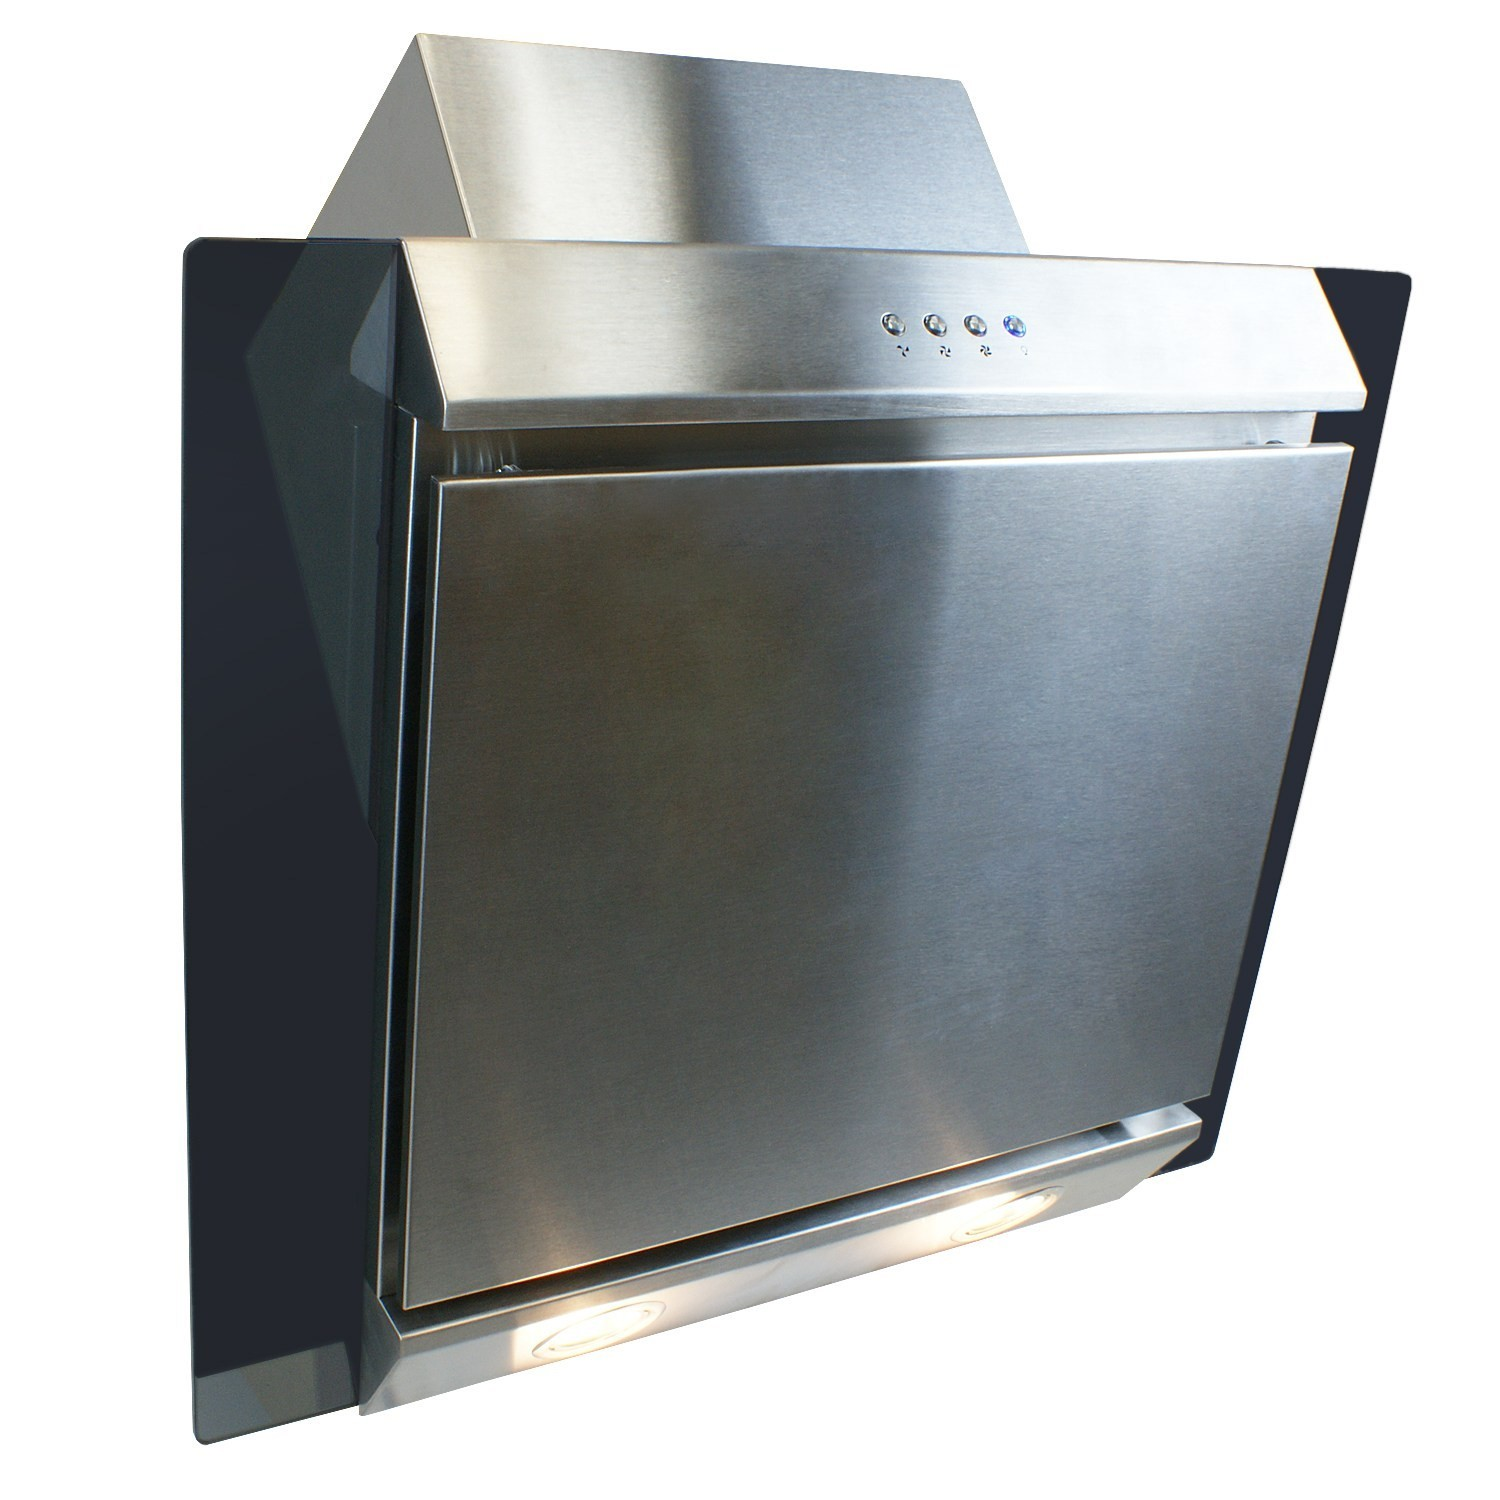 ElectriQ 60cm Stainless Steel Angled Glass Chimney Cooker